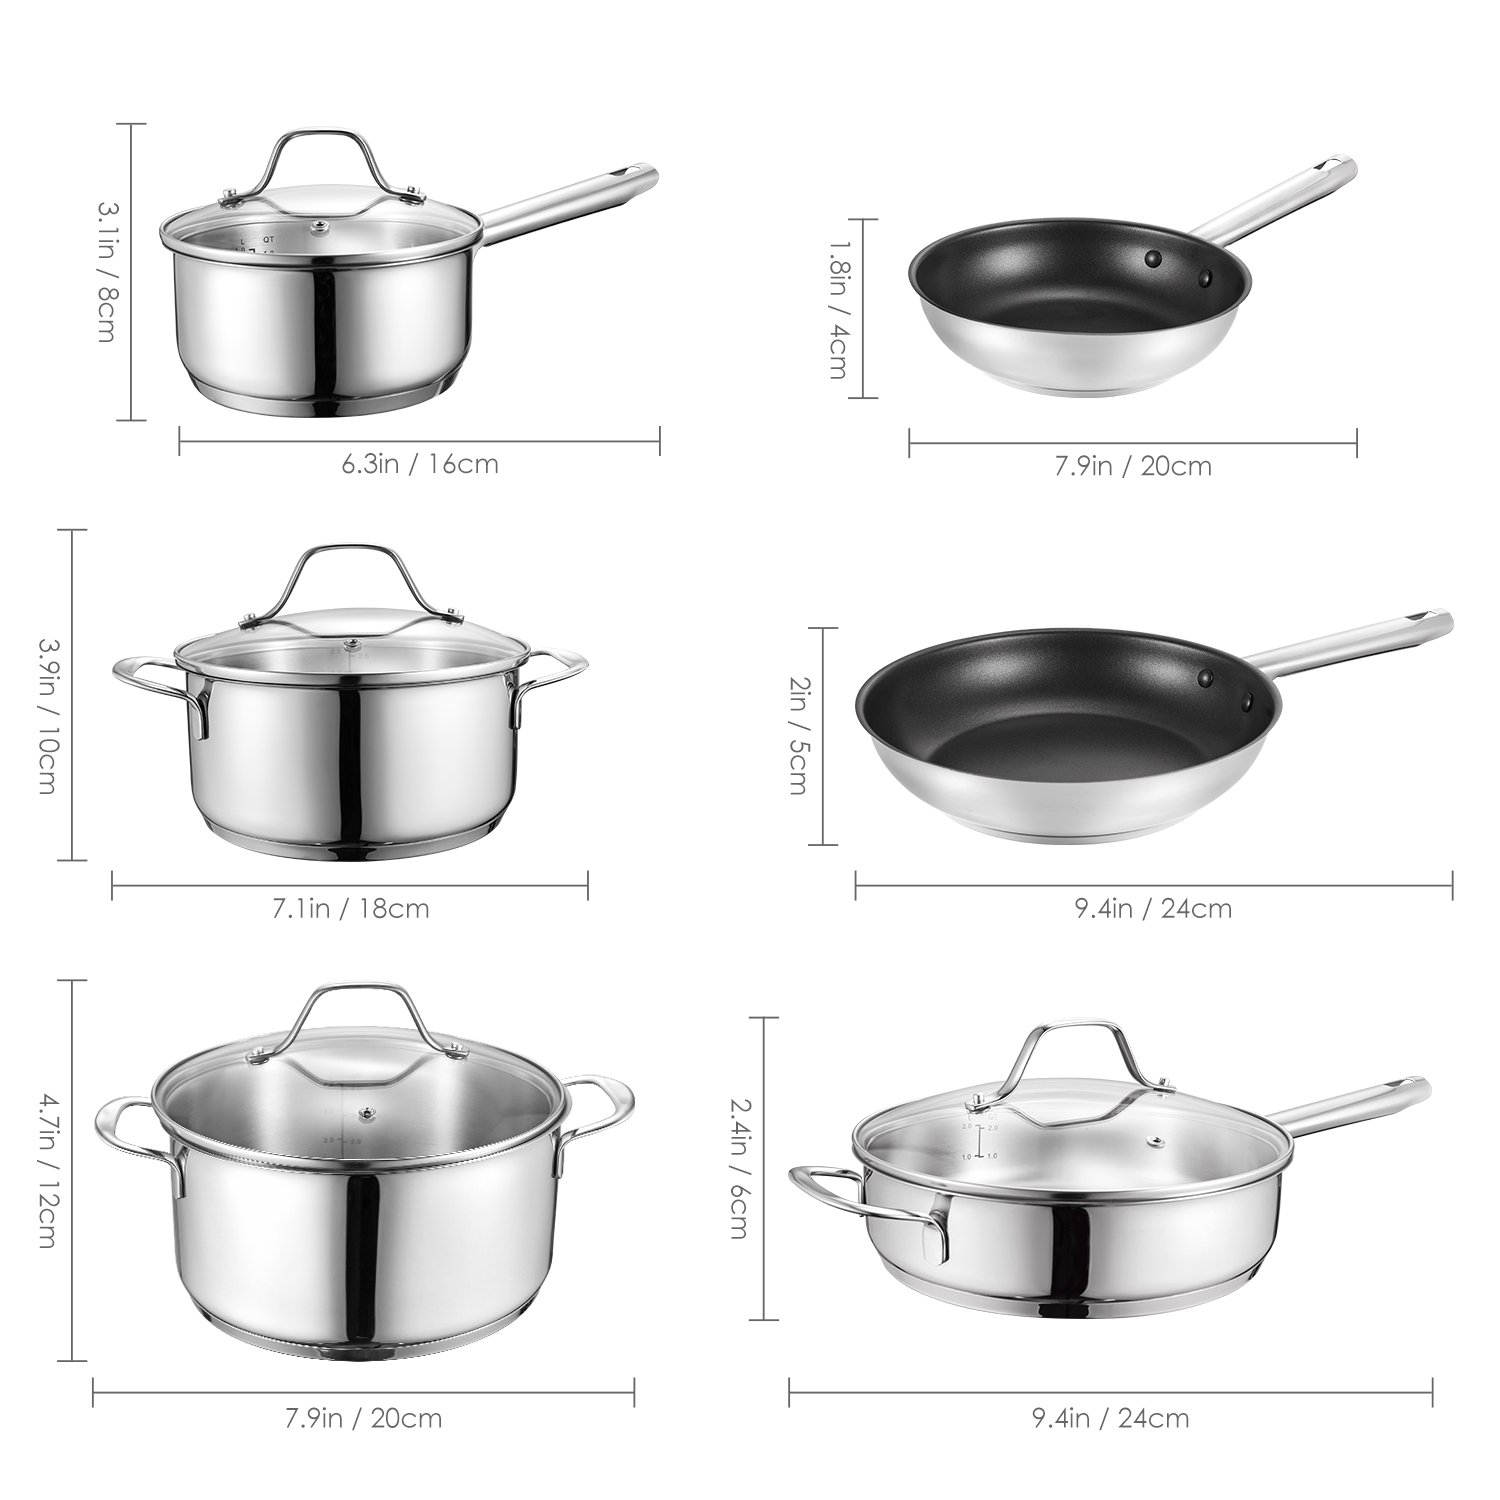 Deik Cookware Set, Kitchenware Set, MultiClad Pro Stainless Steel 12-Piece Pots and Pans Set, Rustproof & Oven-Safe Cooking Pots, PFOA Free & Riveted Handles with a Bonus of Oven Mitts by Deik (Image #8)